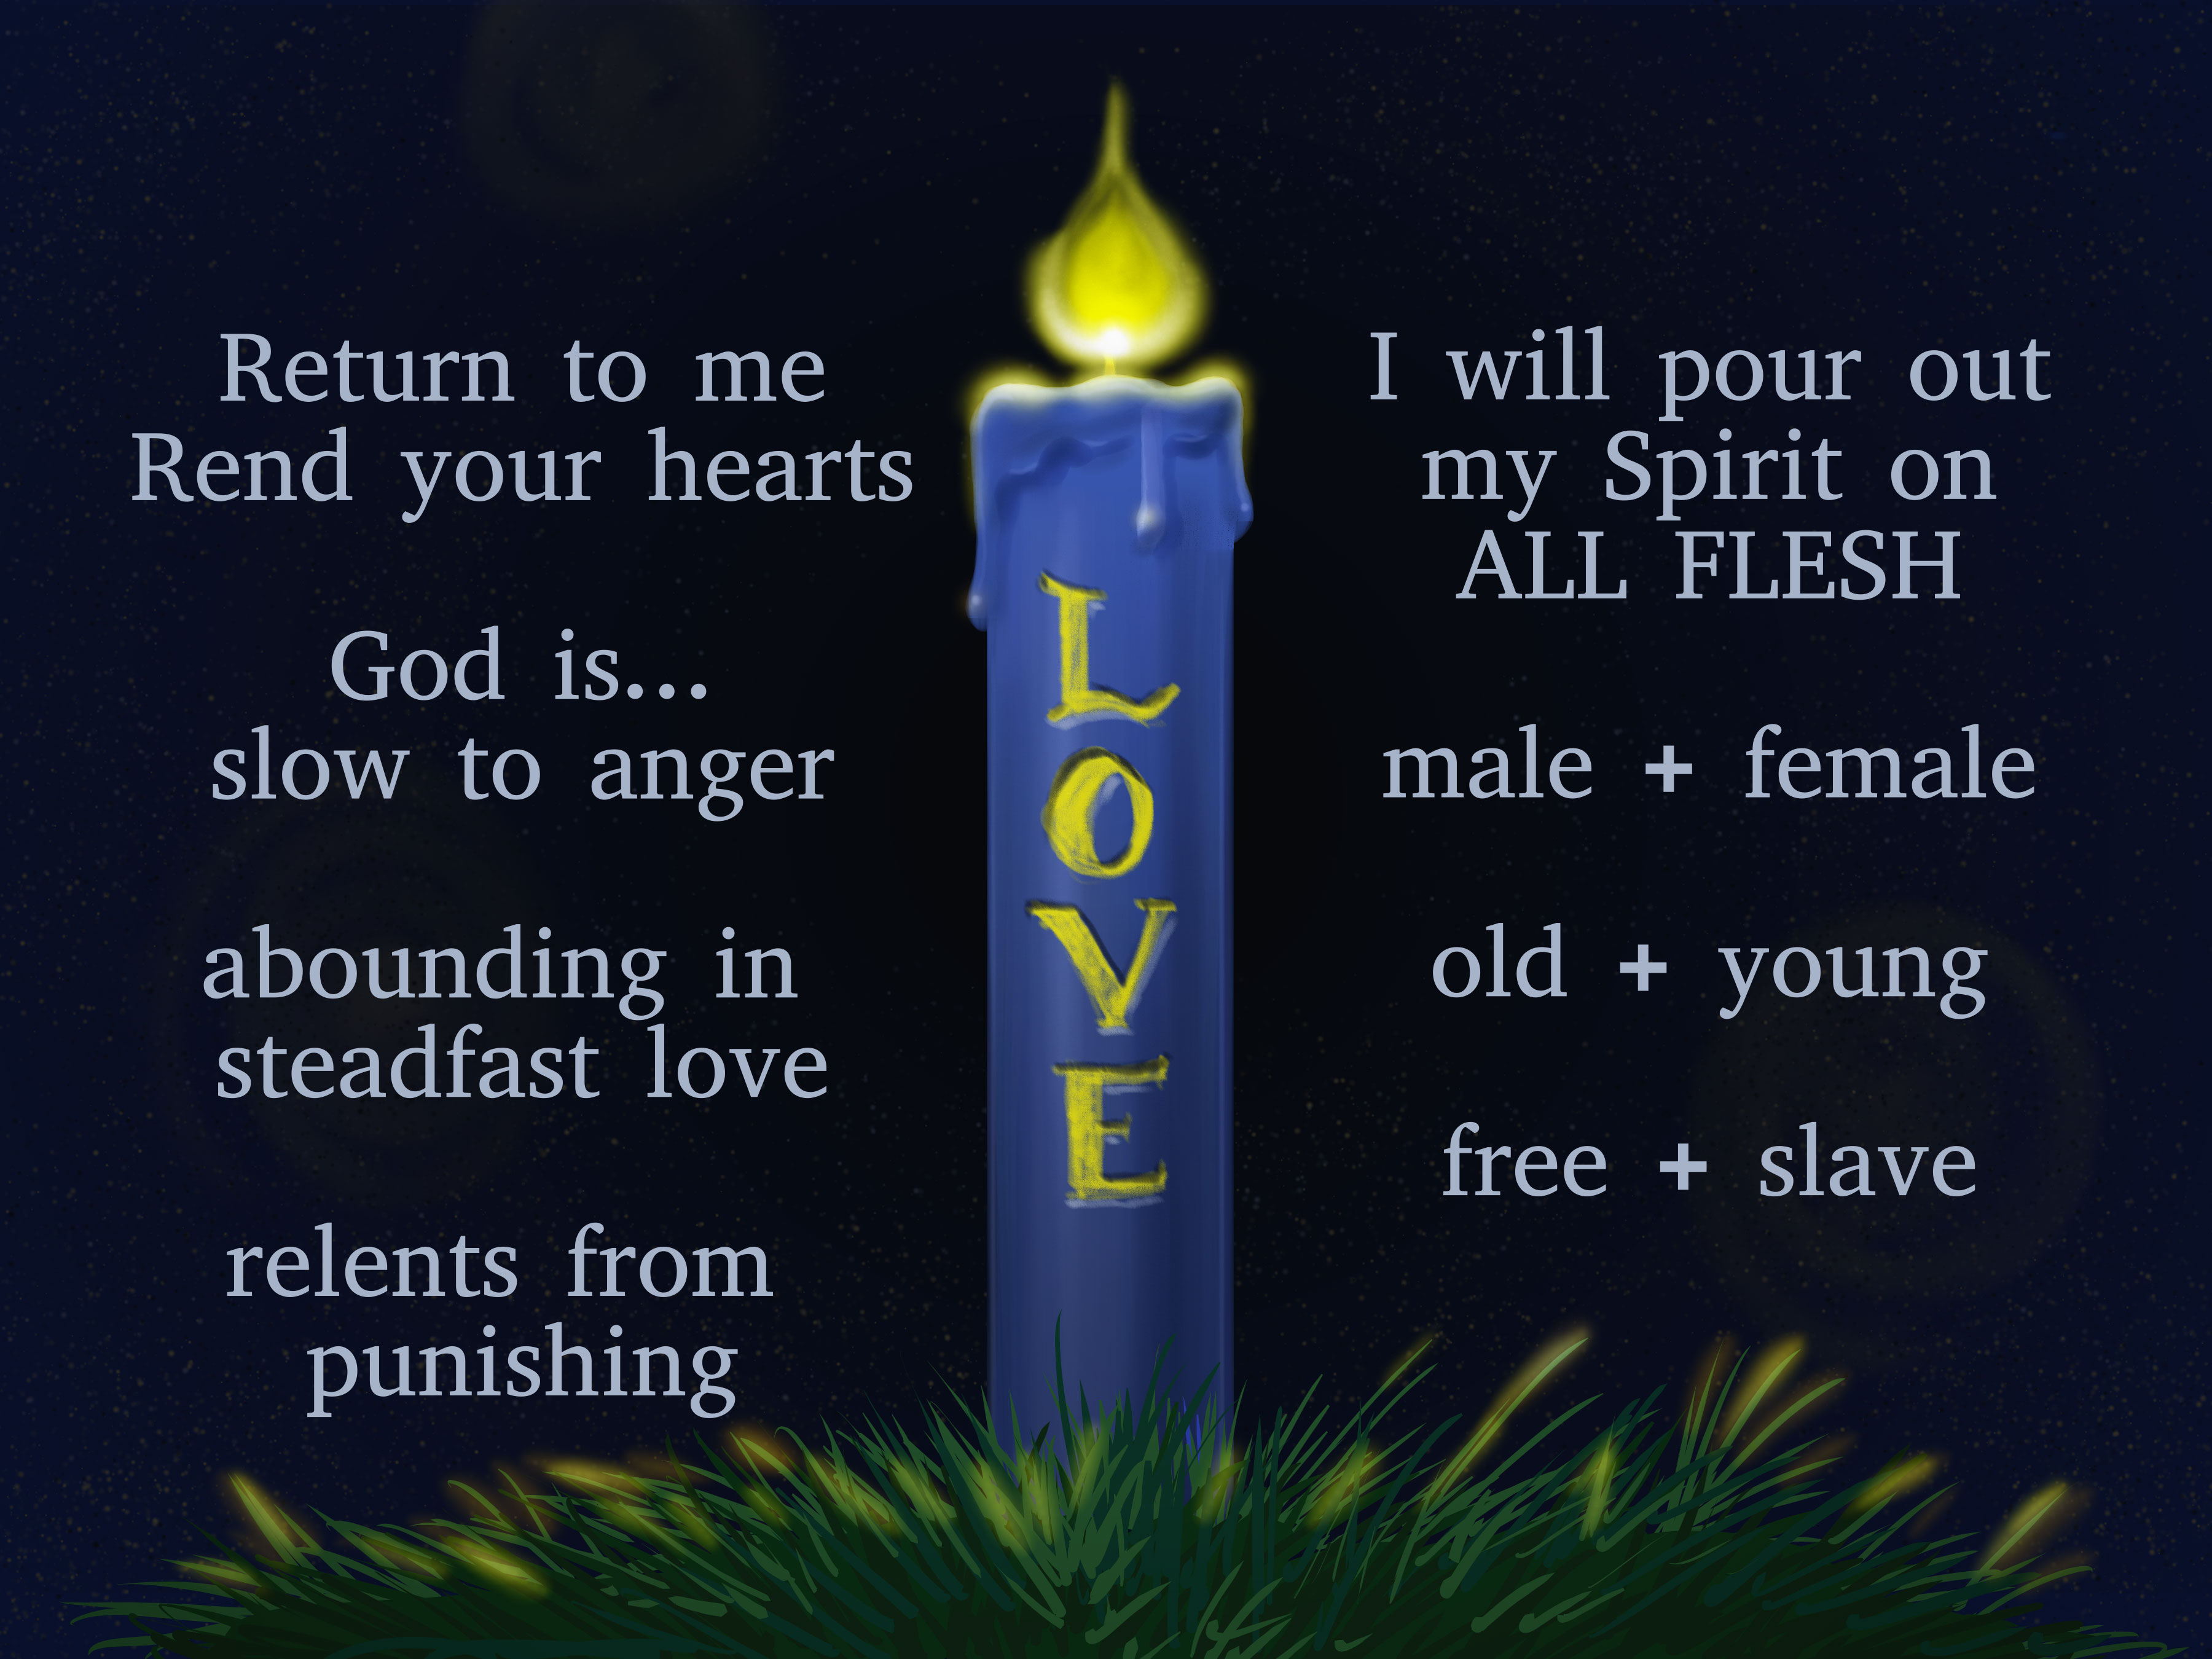 advent-candle-text